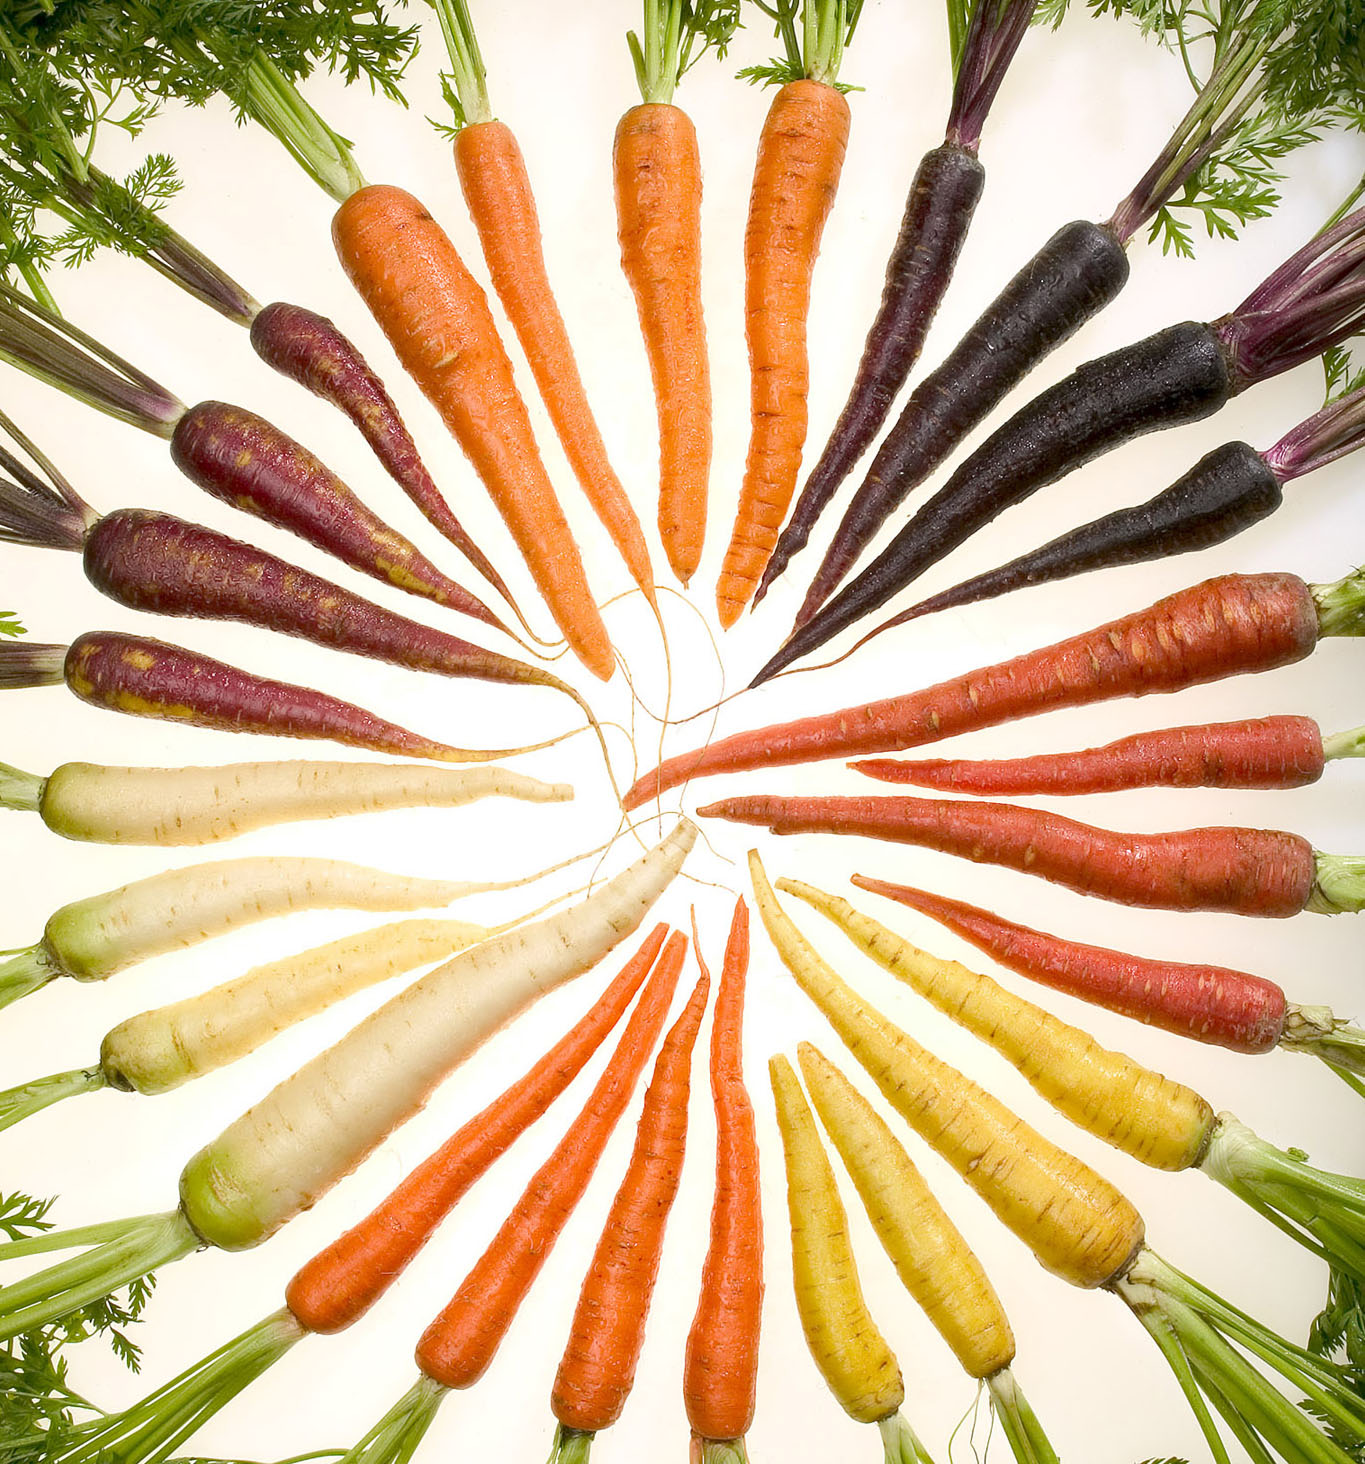 Rainbow Carrots A Royal Treat Bountiful Baskets Blog